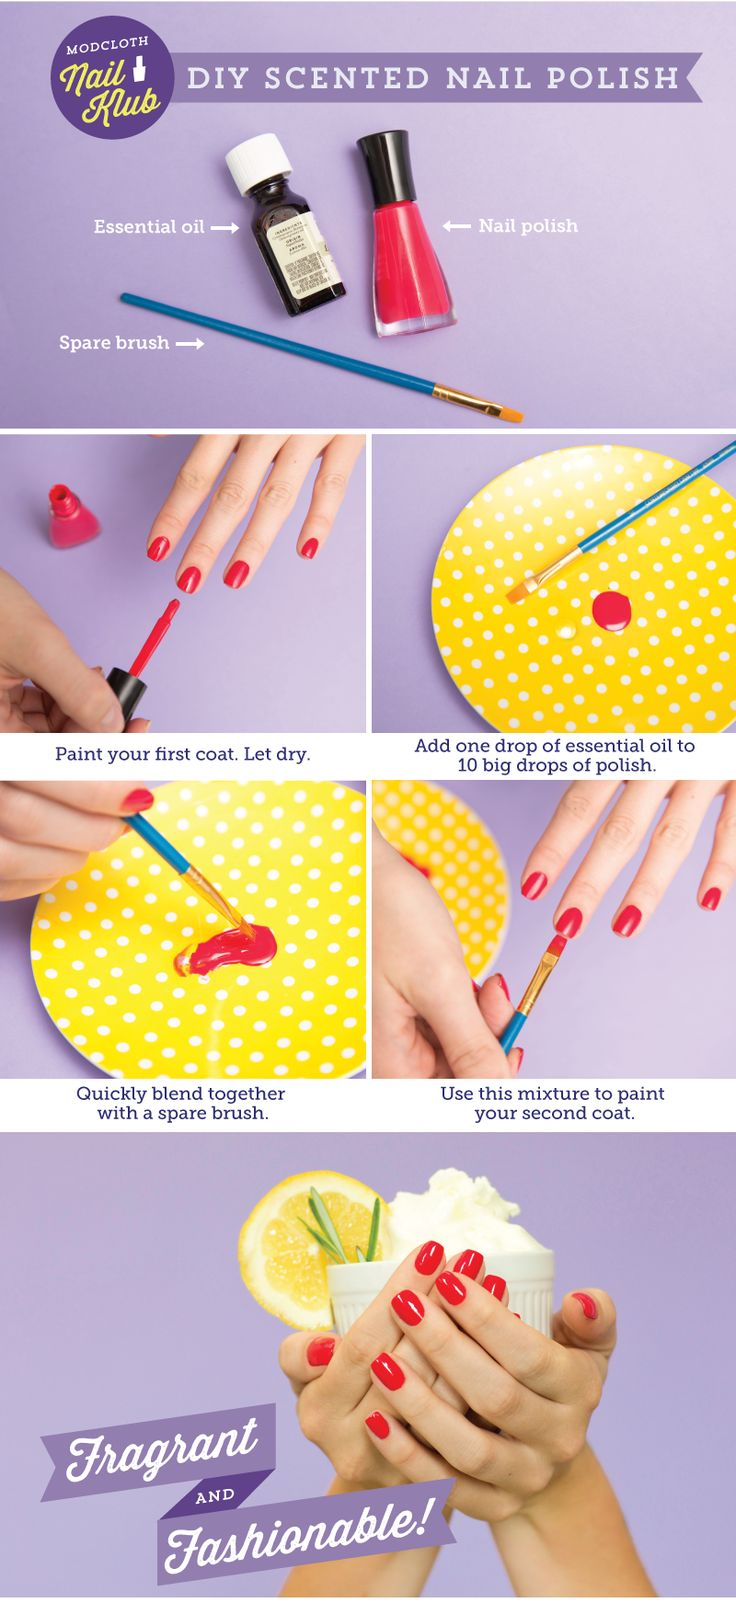 Fragrant & Fashionable: DIY Scented Nail Polish!